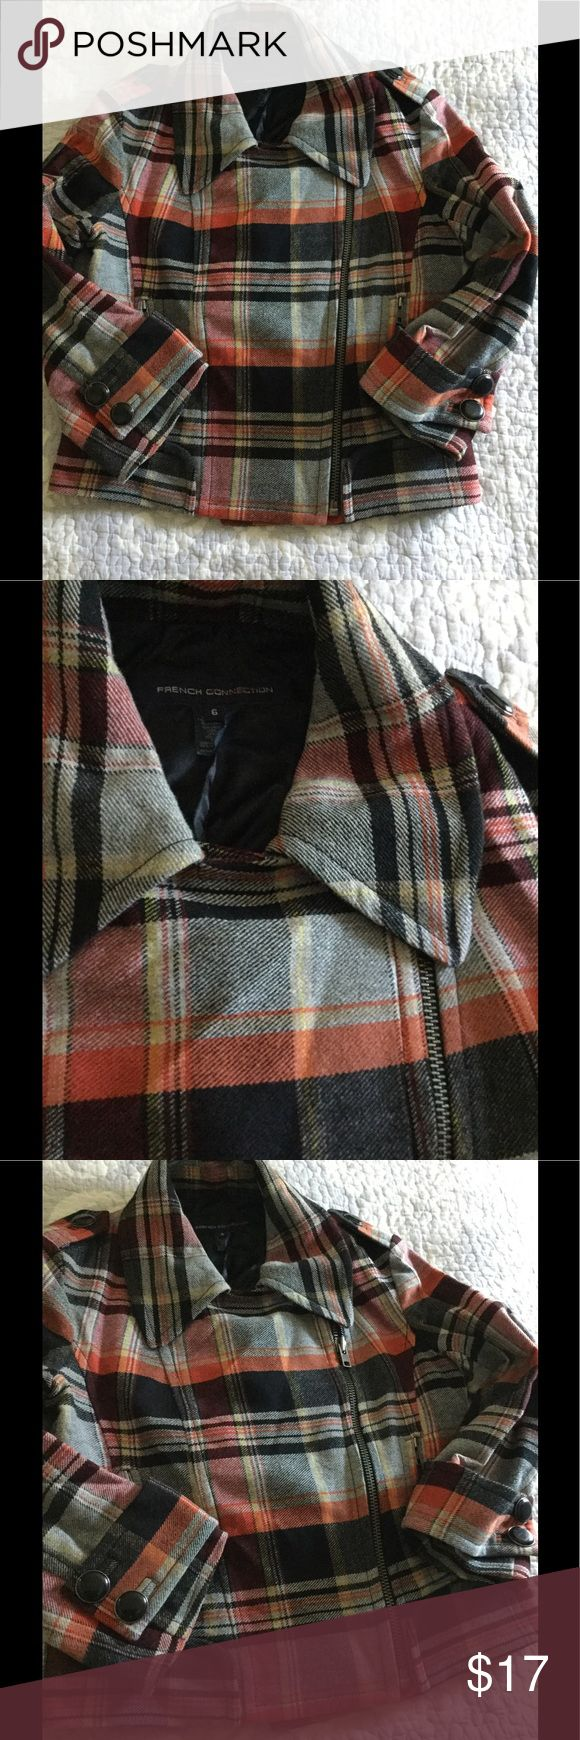 French Connection Plaid Wool Jacket French Connection Wool Plaid coat hardly worn at all. Great condition French Connection Jackets & Coats Blazers